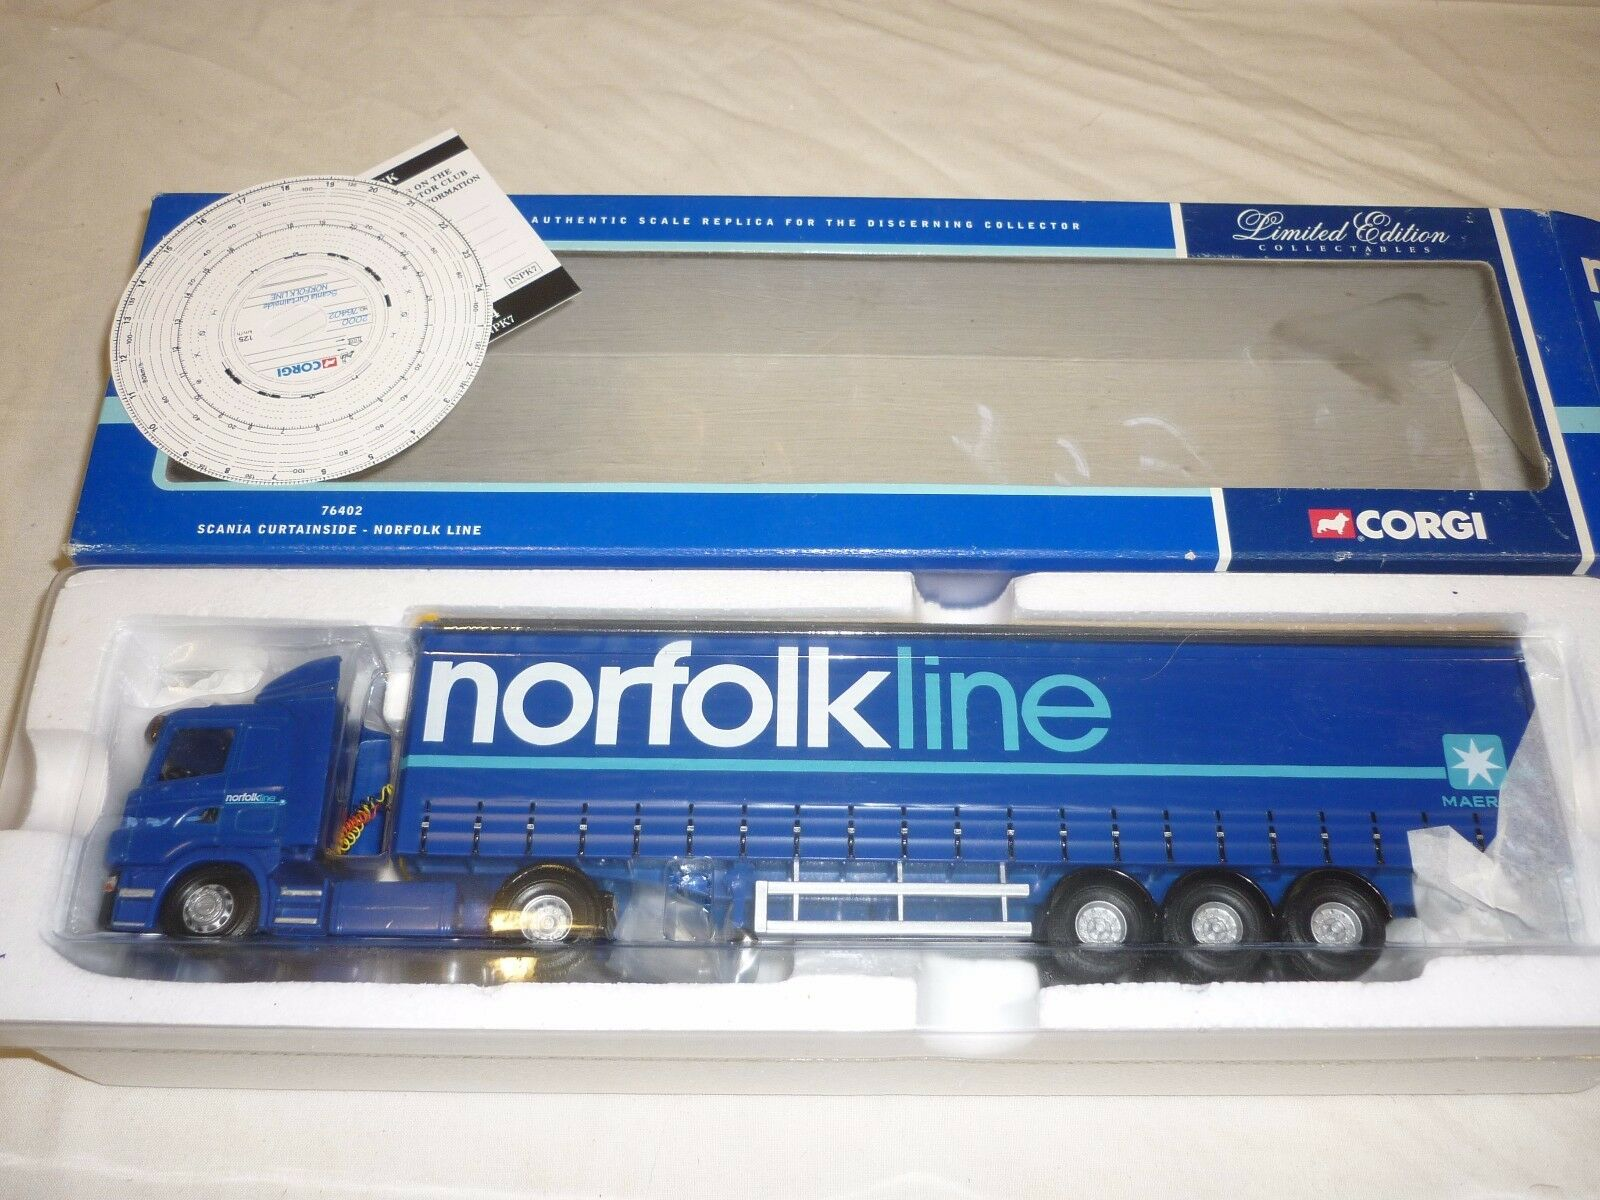 A Corgi cc 76402 Scania curtain side Norfolk line  boxed